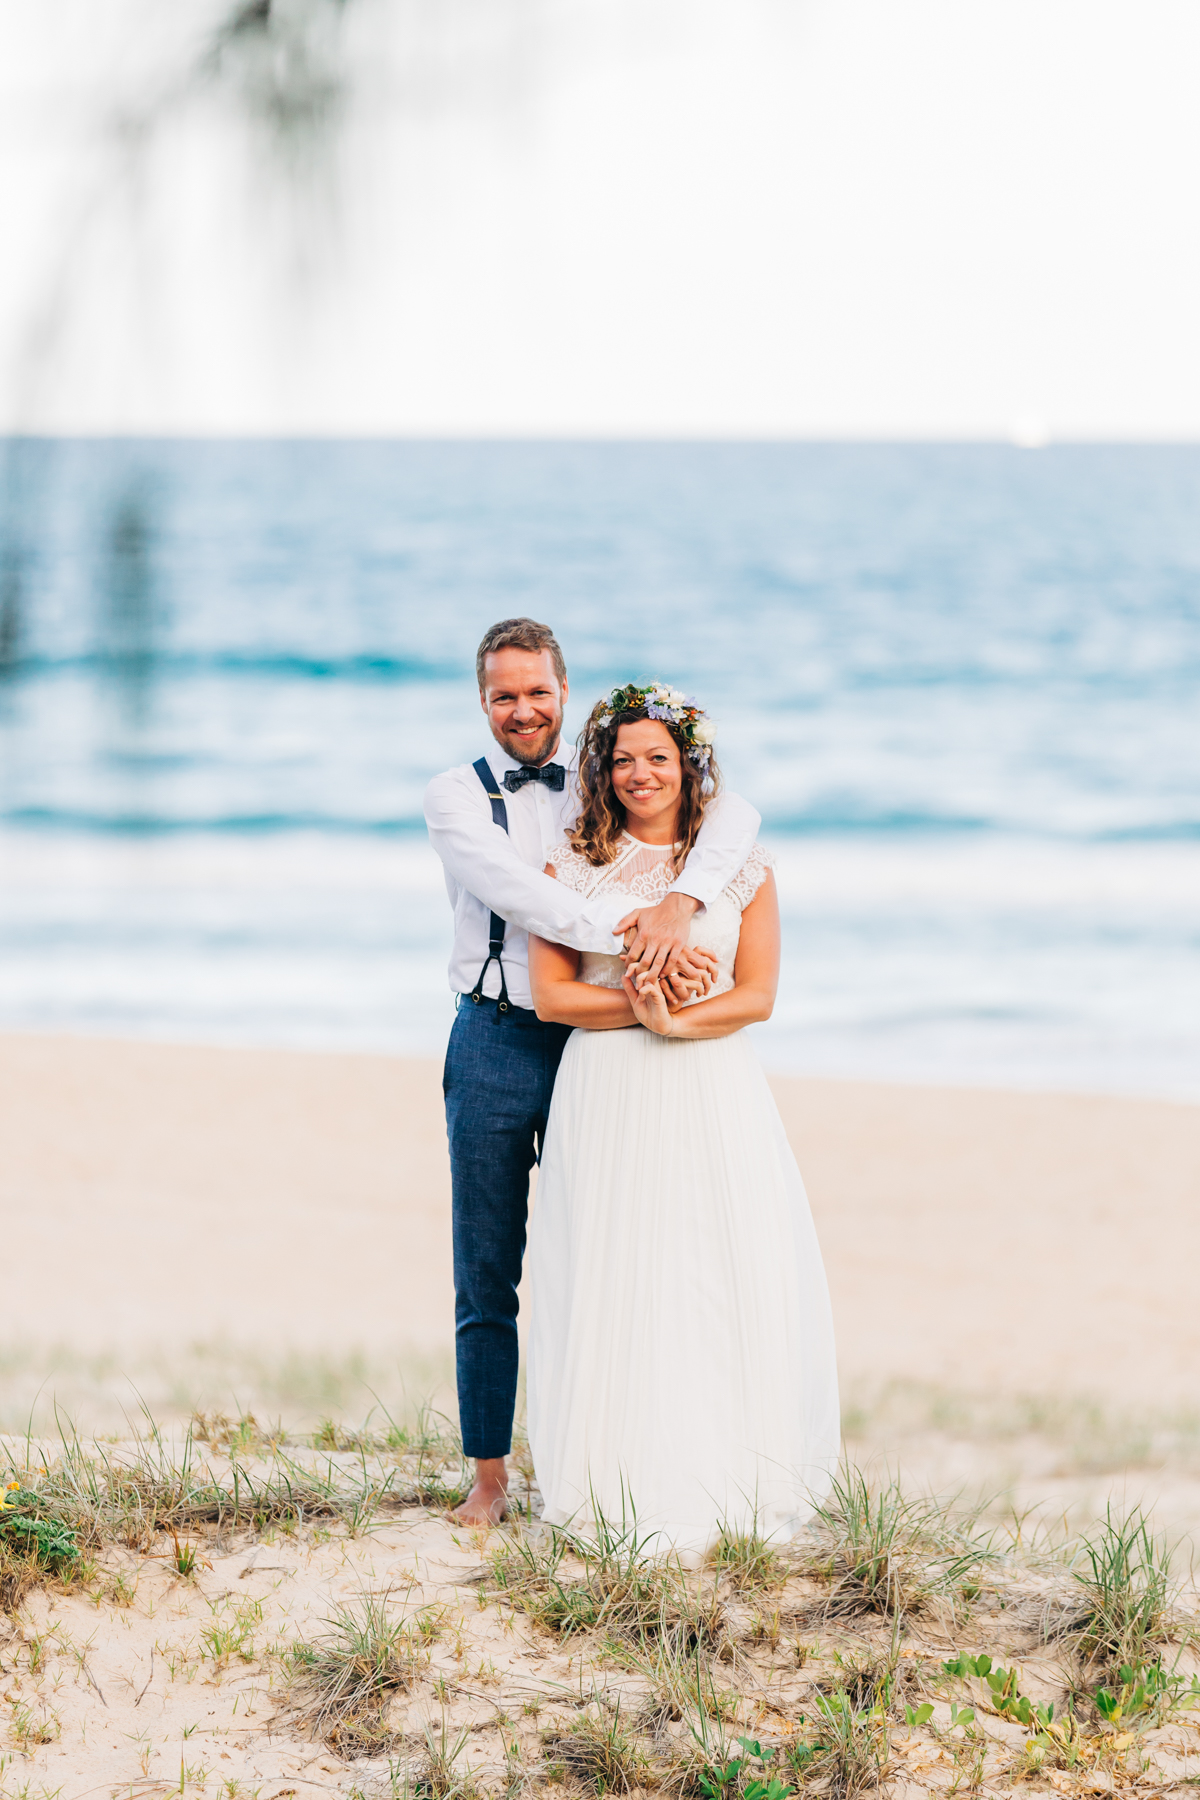 Sunshine-Beach-Wedding-Photographers-Lindy-Yewen 102.jpg